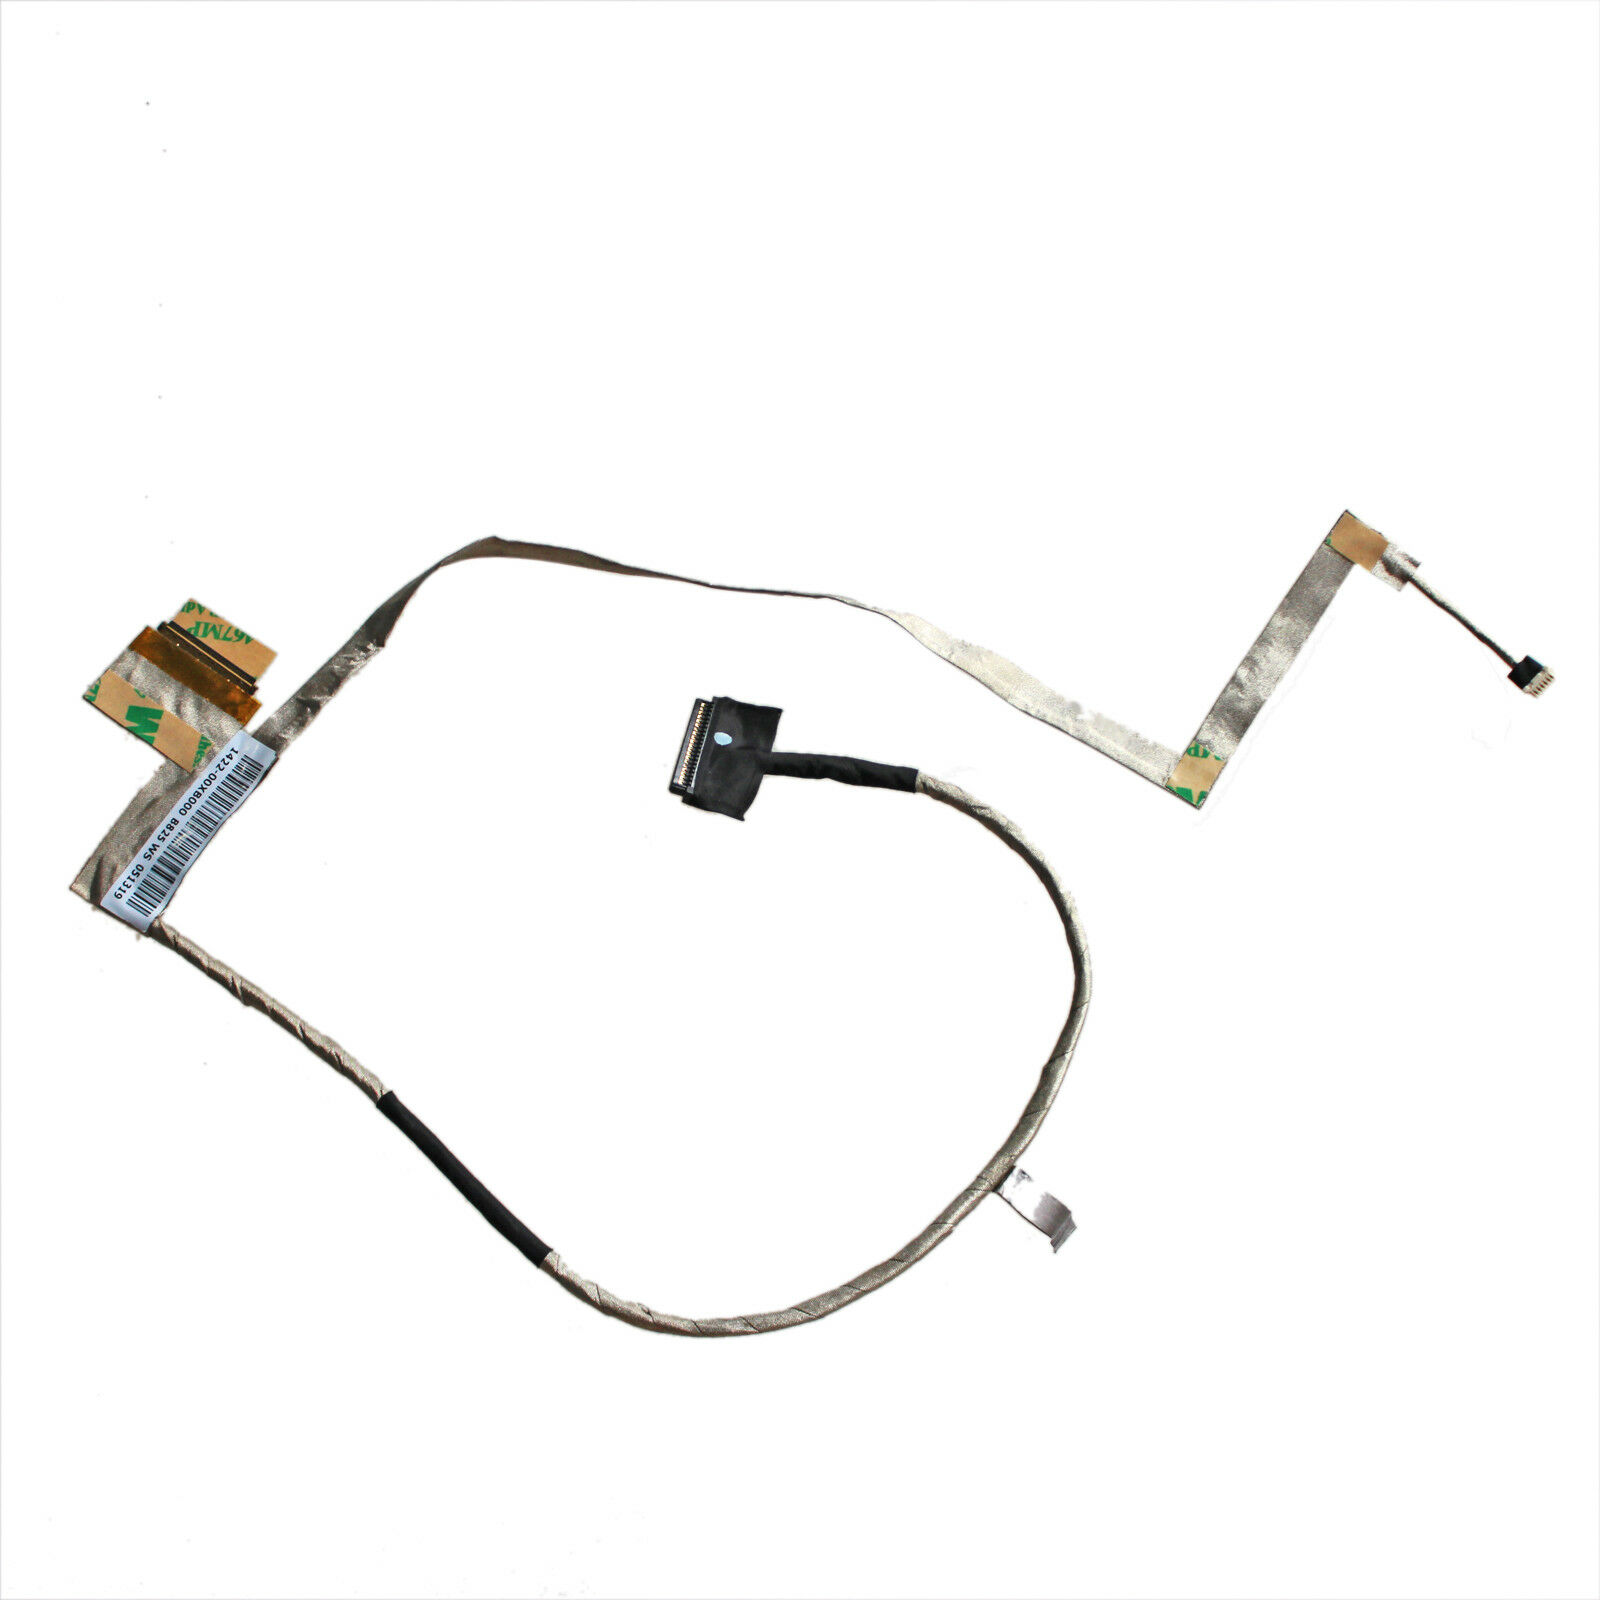 Toshiba Satellite C670 C670D C675 C675D LCD Cable Wire